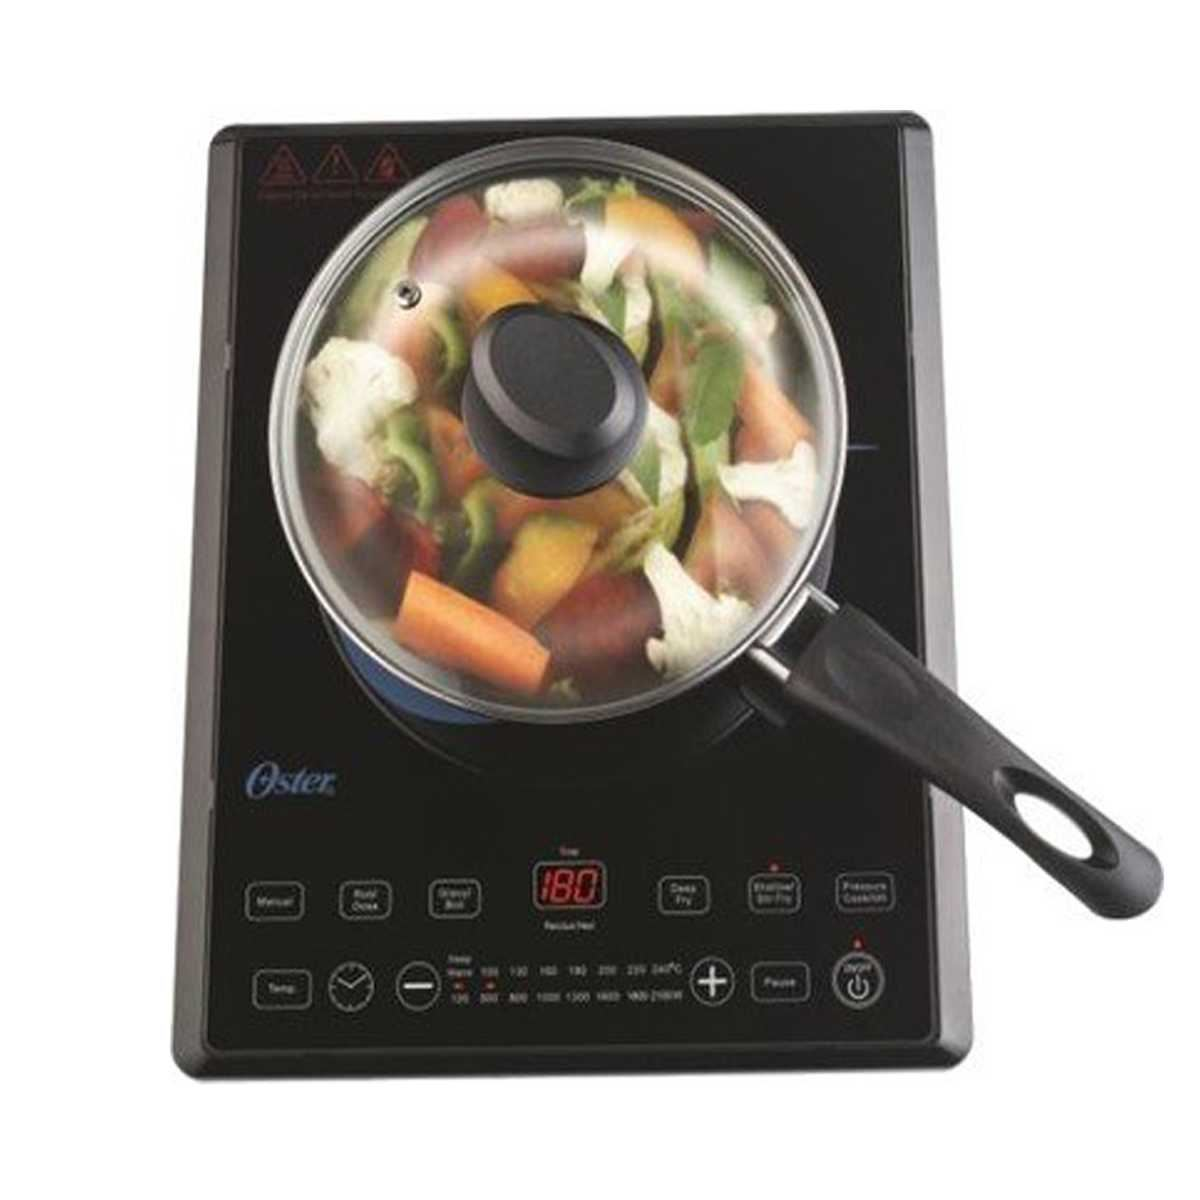 Picture of Oster Induction Cooker CKSTIC1112-449